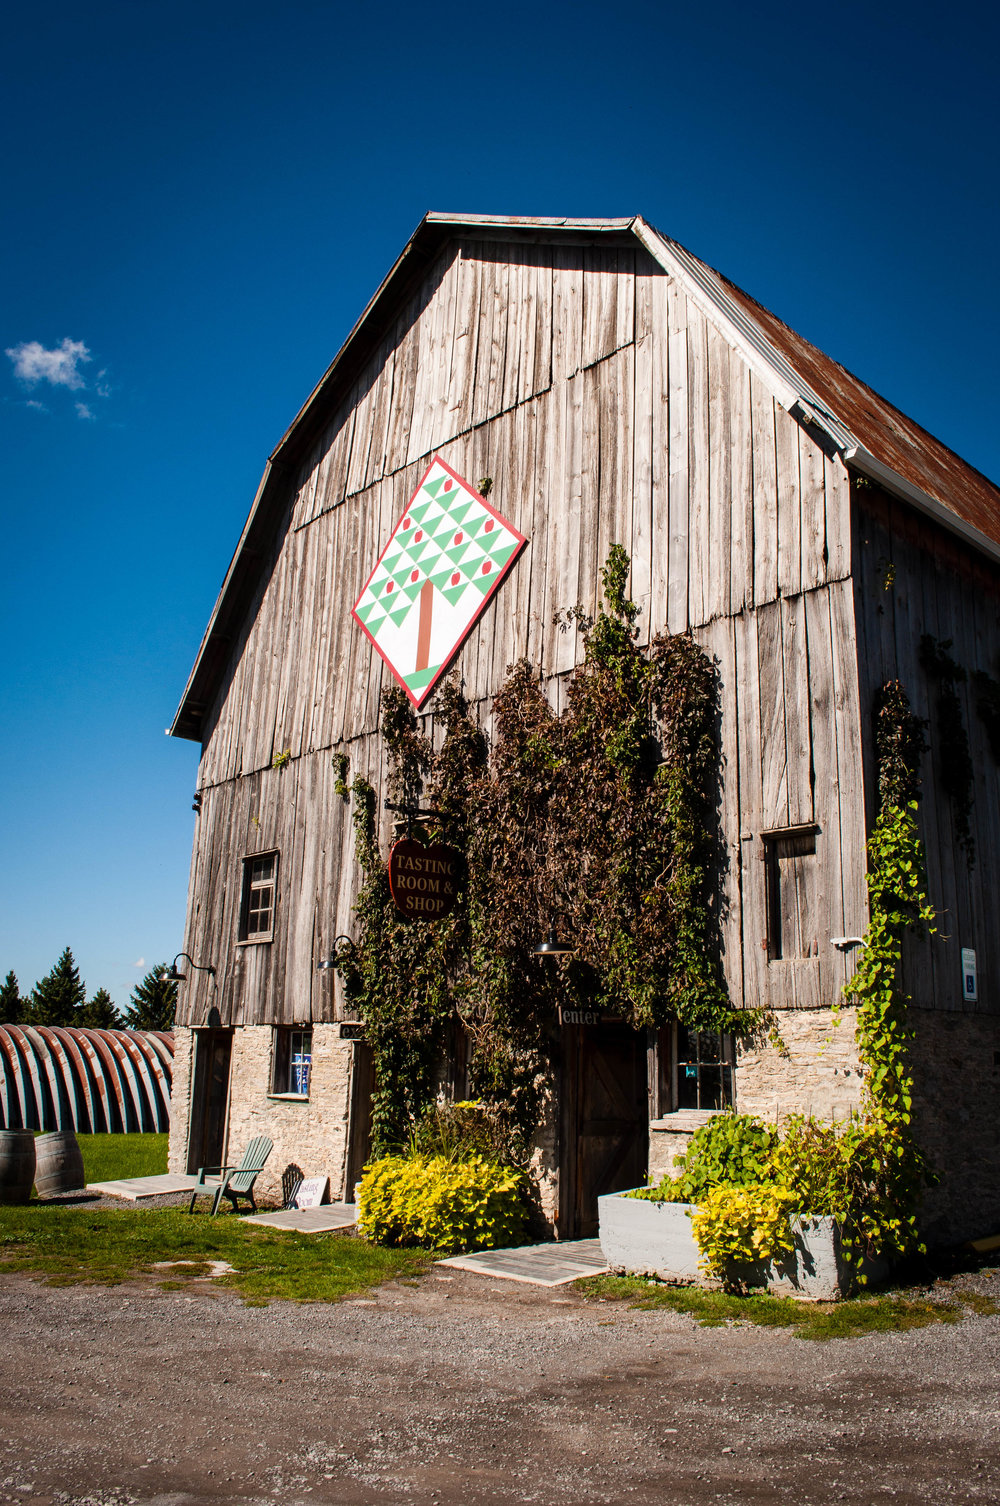 County Cider - Things to do in Prince Edward County